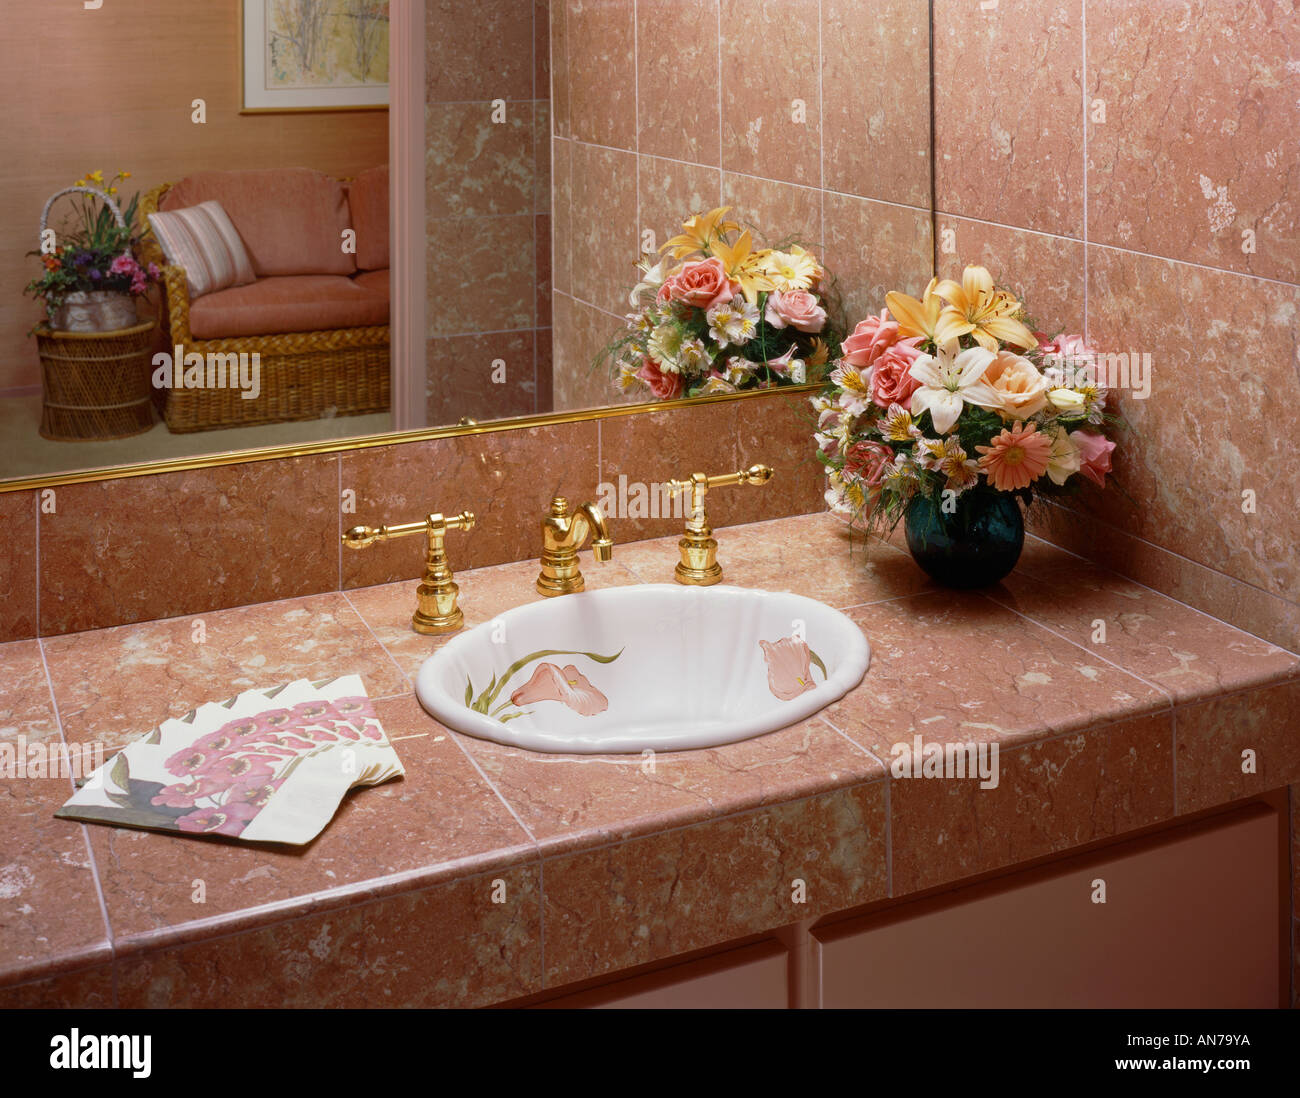 BATHROOM With GOLD SINK SPIGOTS RED MARBLE COUNTER TOP DESIGNER SINK - Bathroom sink spigots